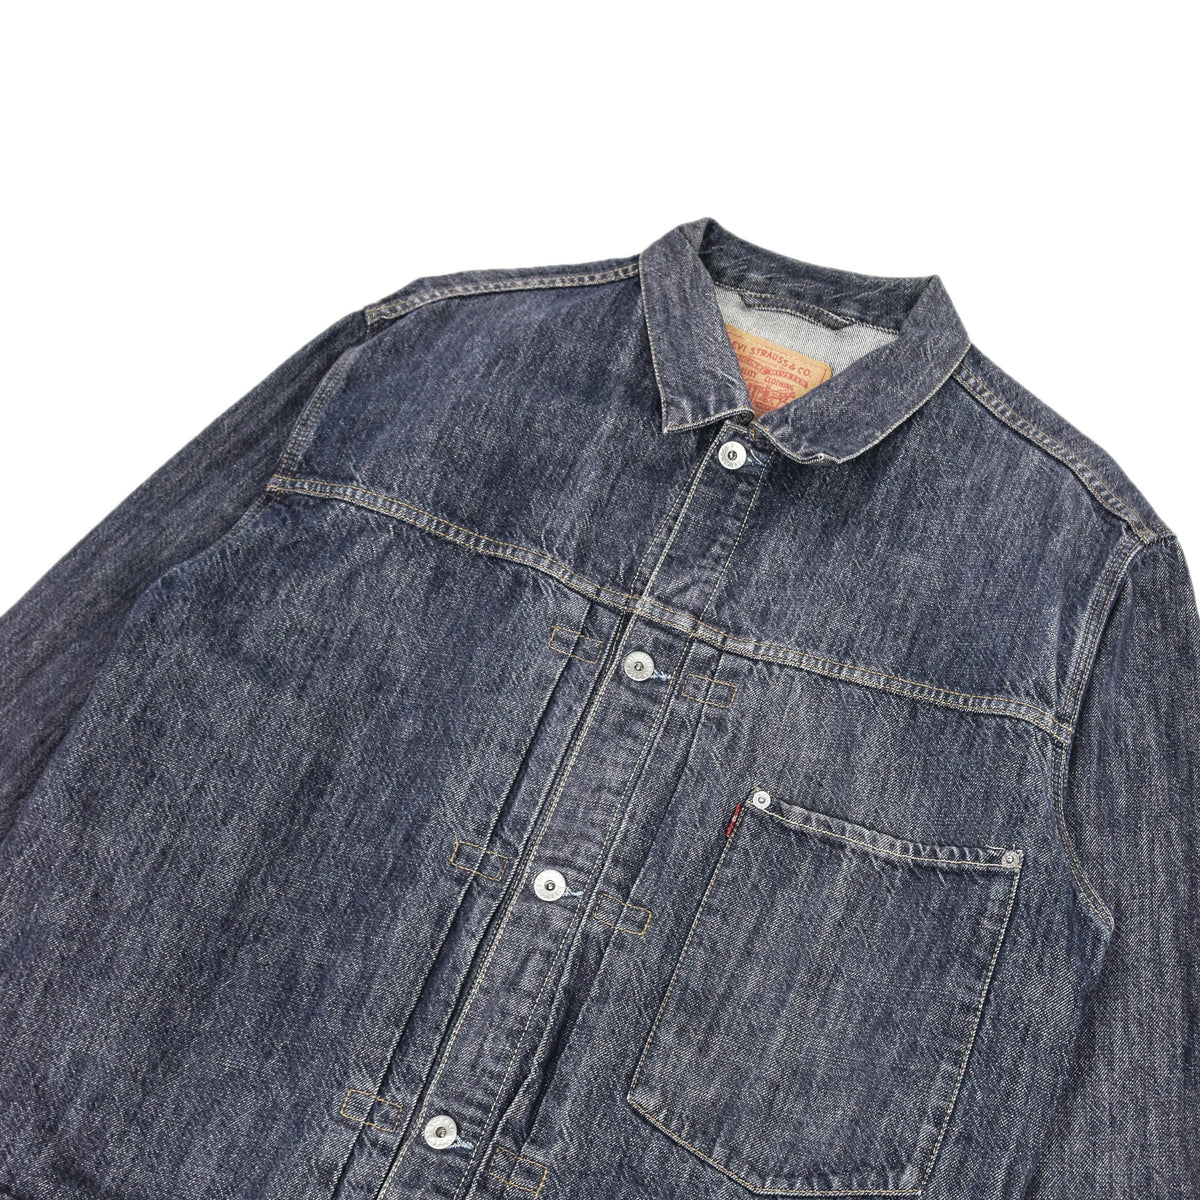 Vintage Levi Red Tab 70501 Pleated Front Blue Denim Trucker Jacket XL top pocket